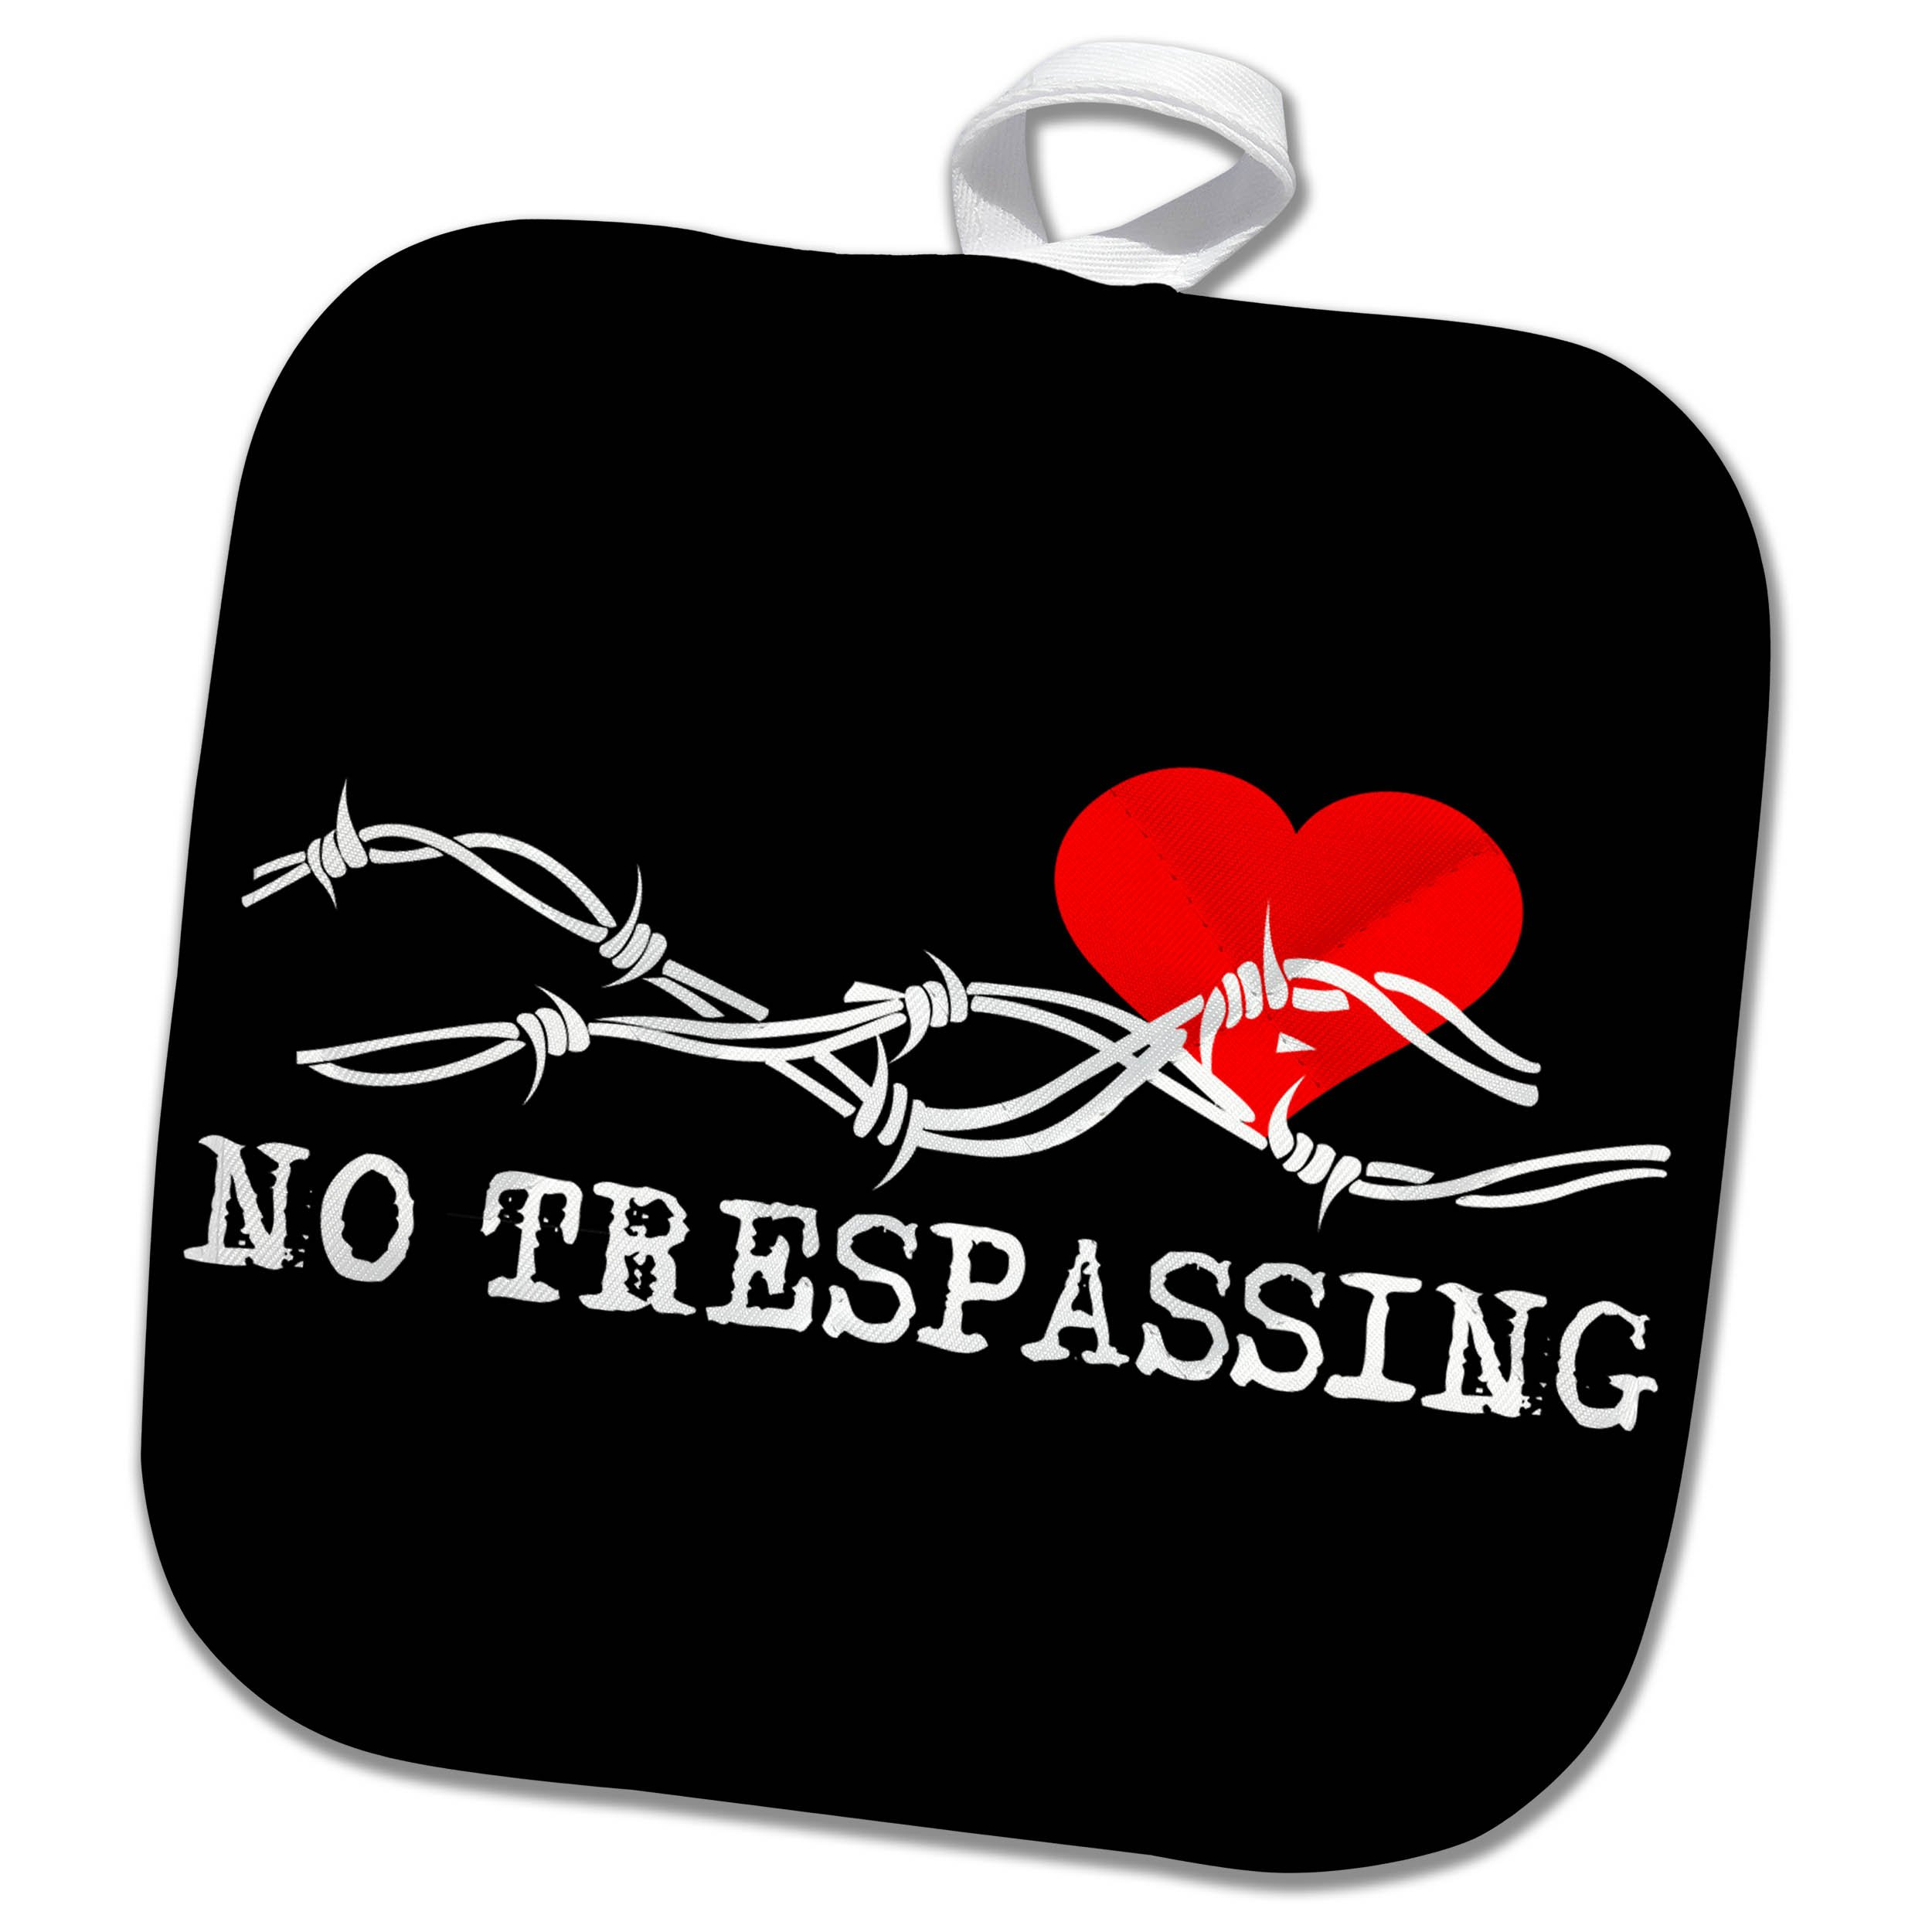 3dRose Alexis Design - Love - Barbed wire, red heart, no trespassing white text on black - 8x8 Potholder (phl_272313_1)